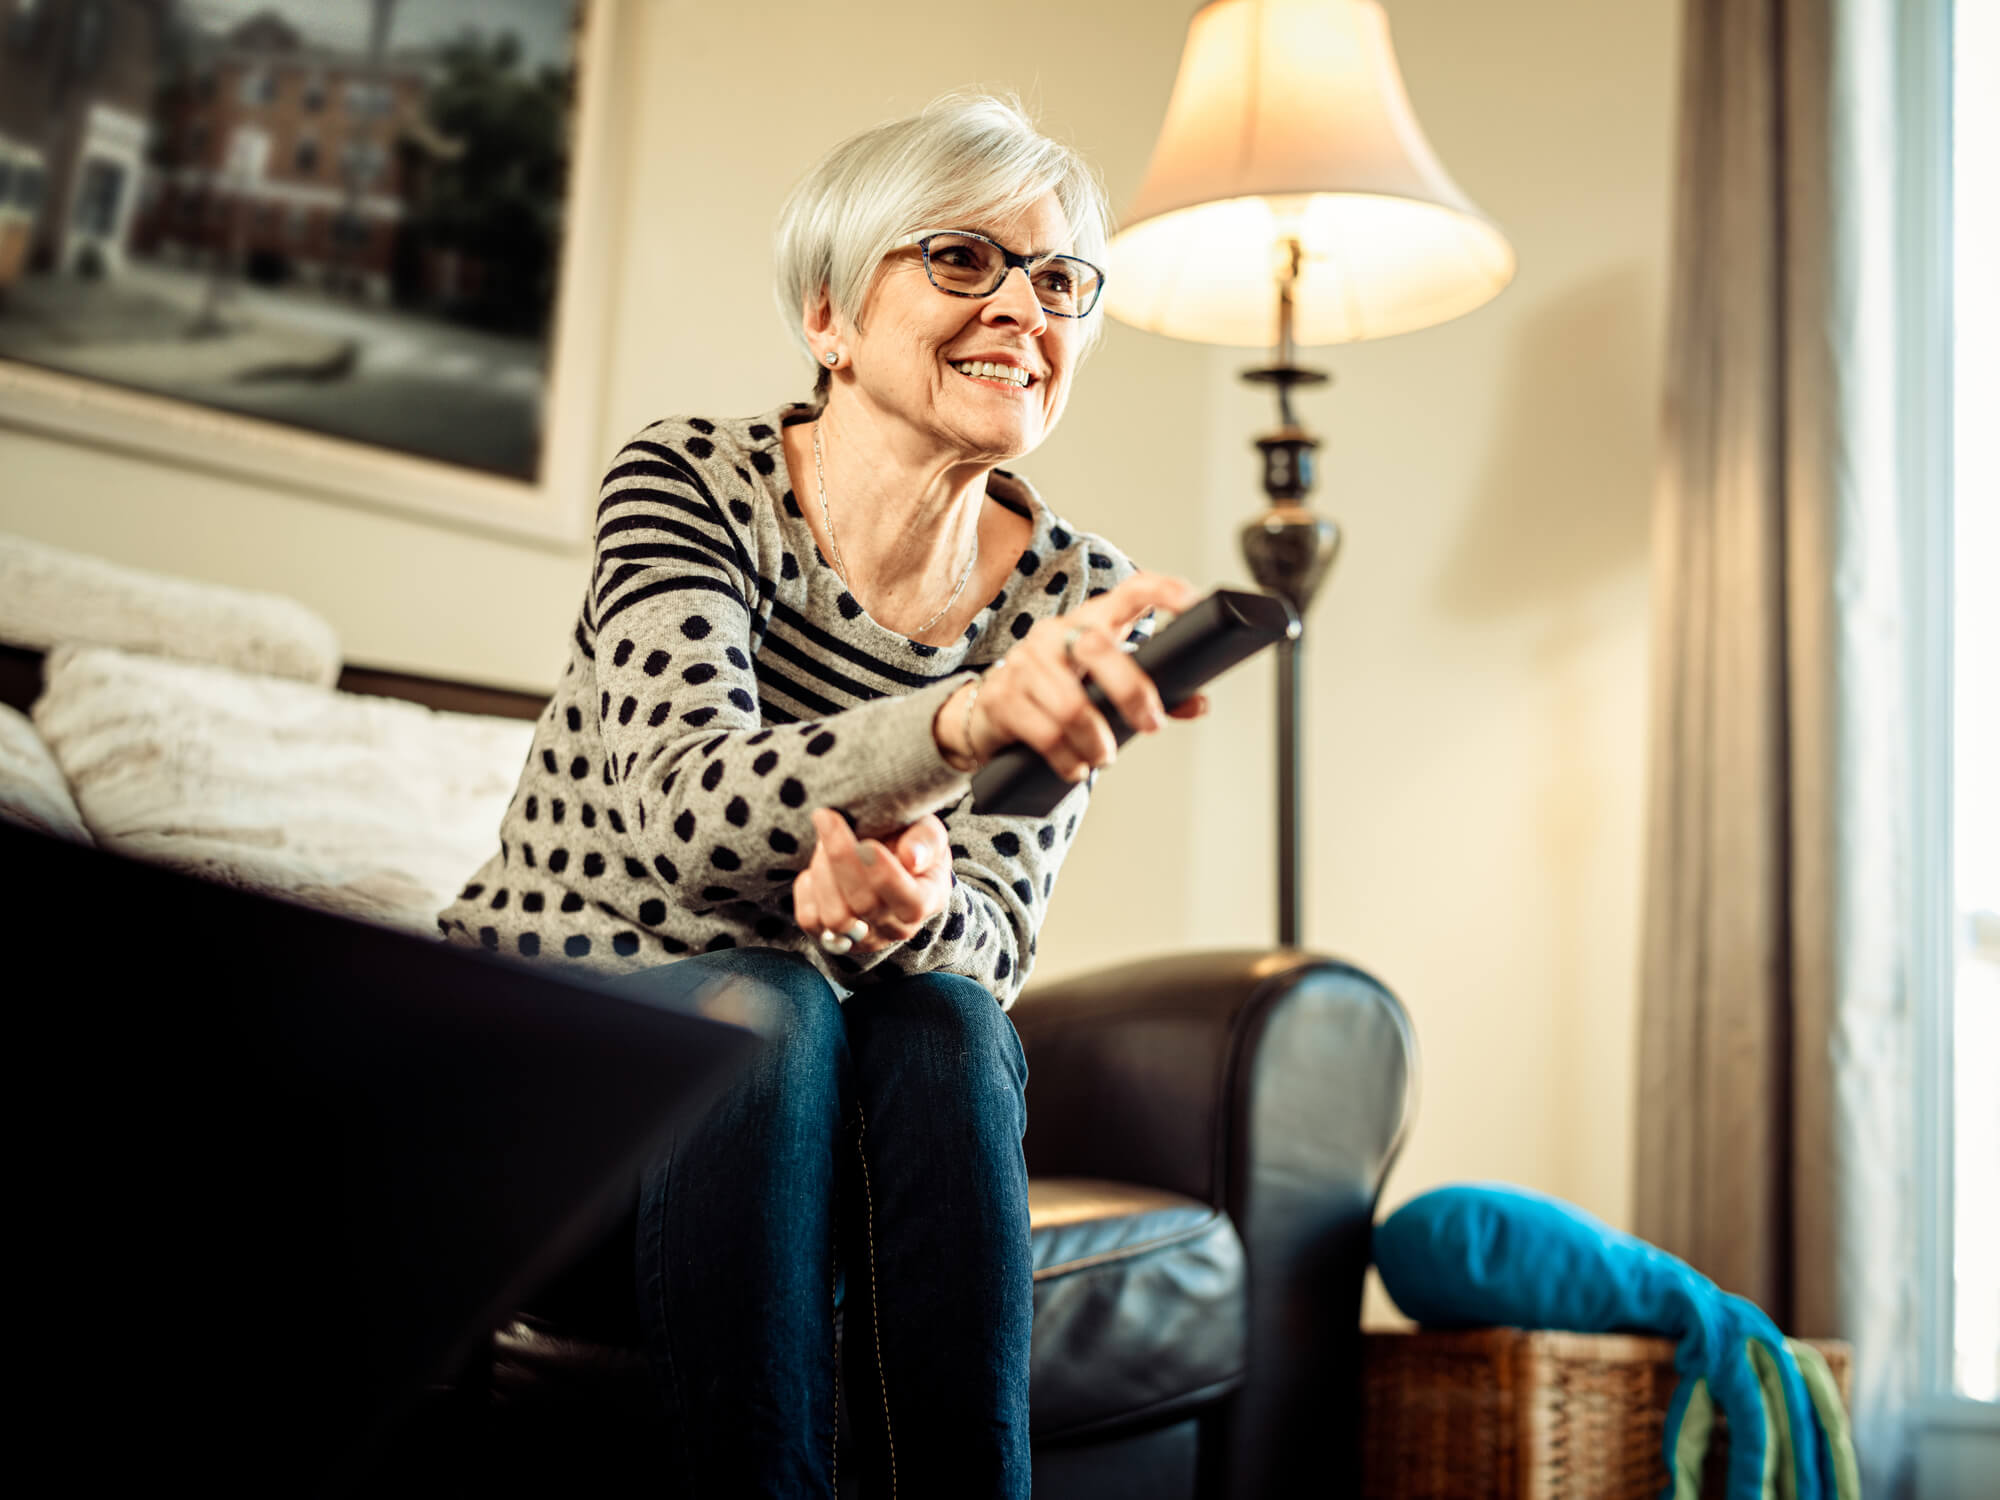 Grandmother sitting on couch in living room watching cable TV